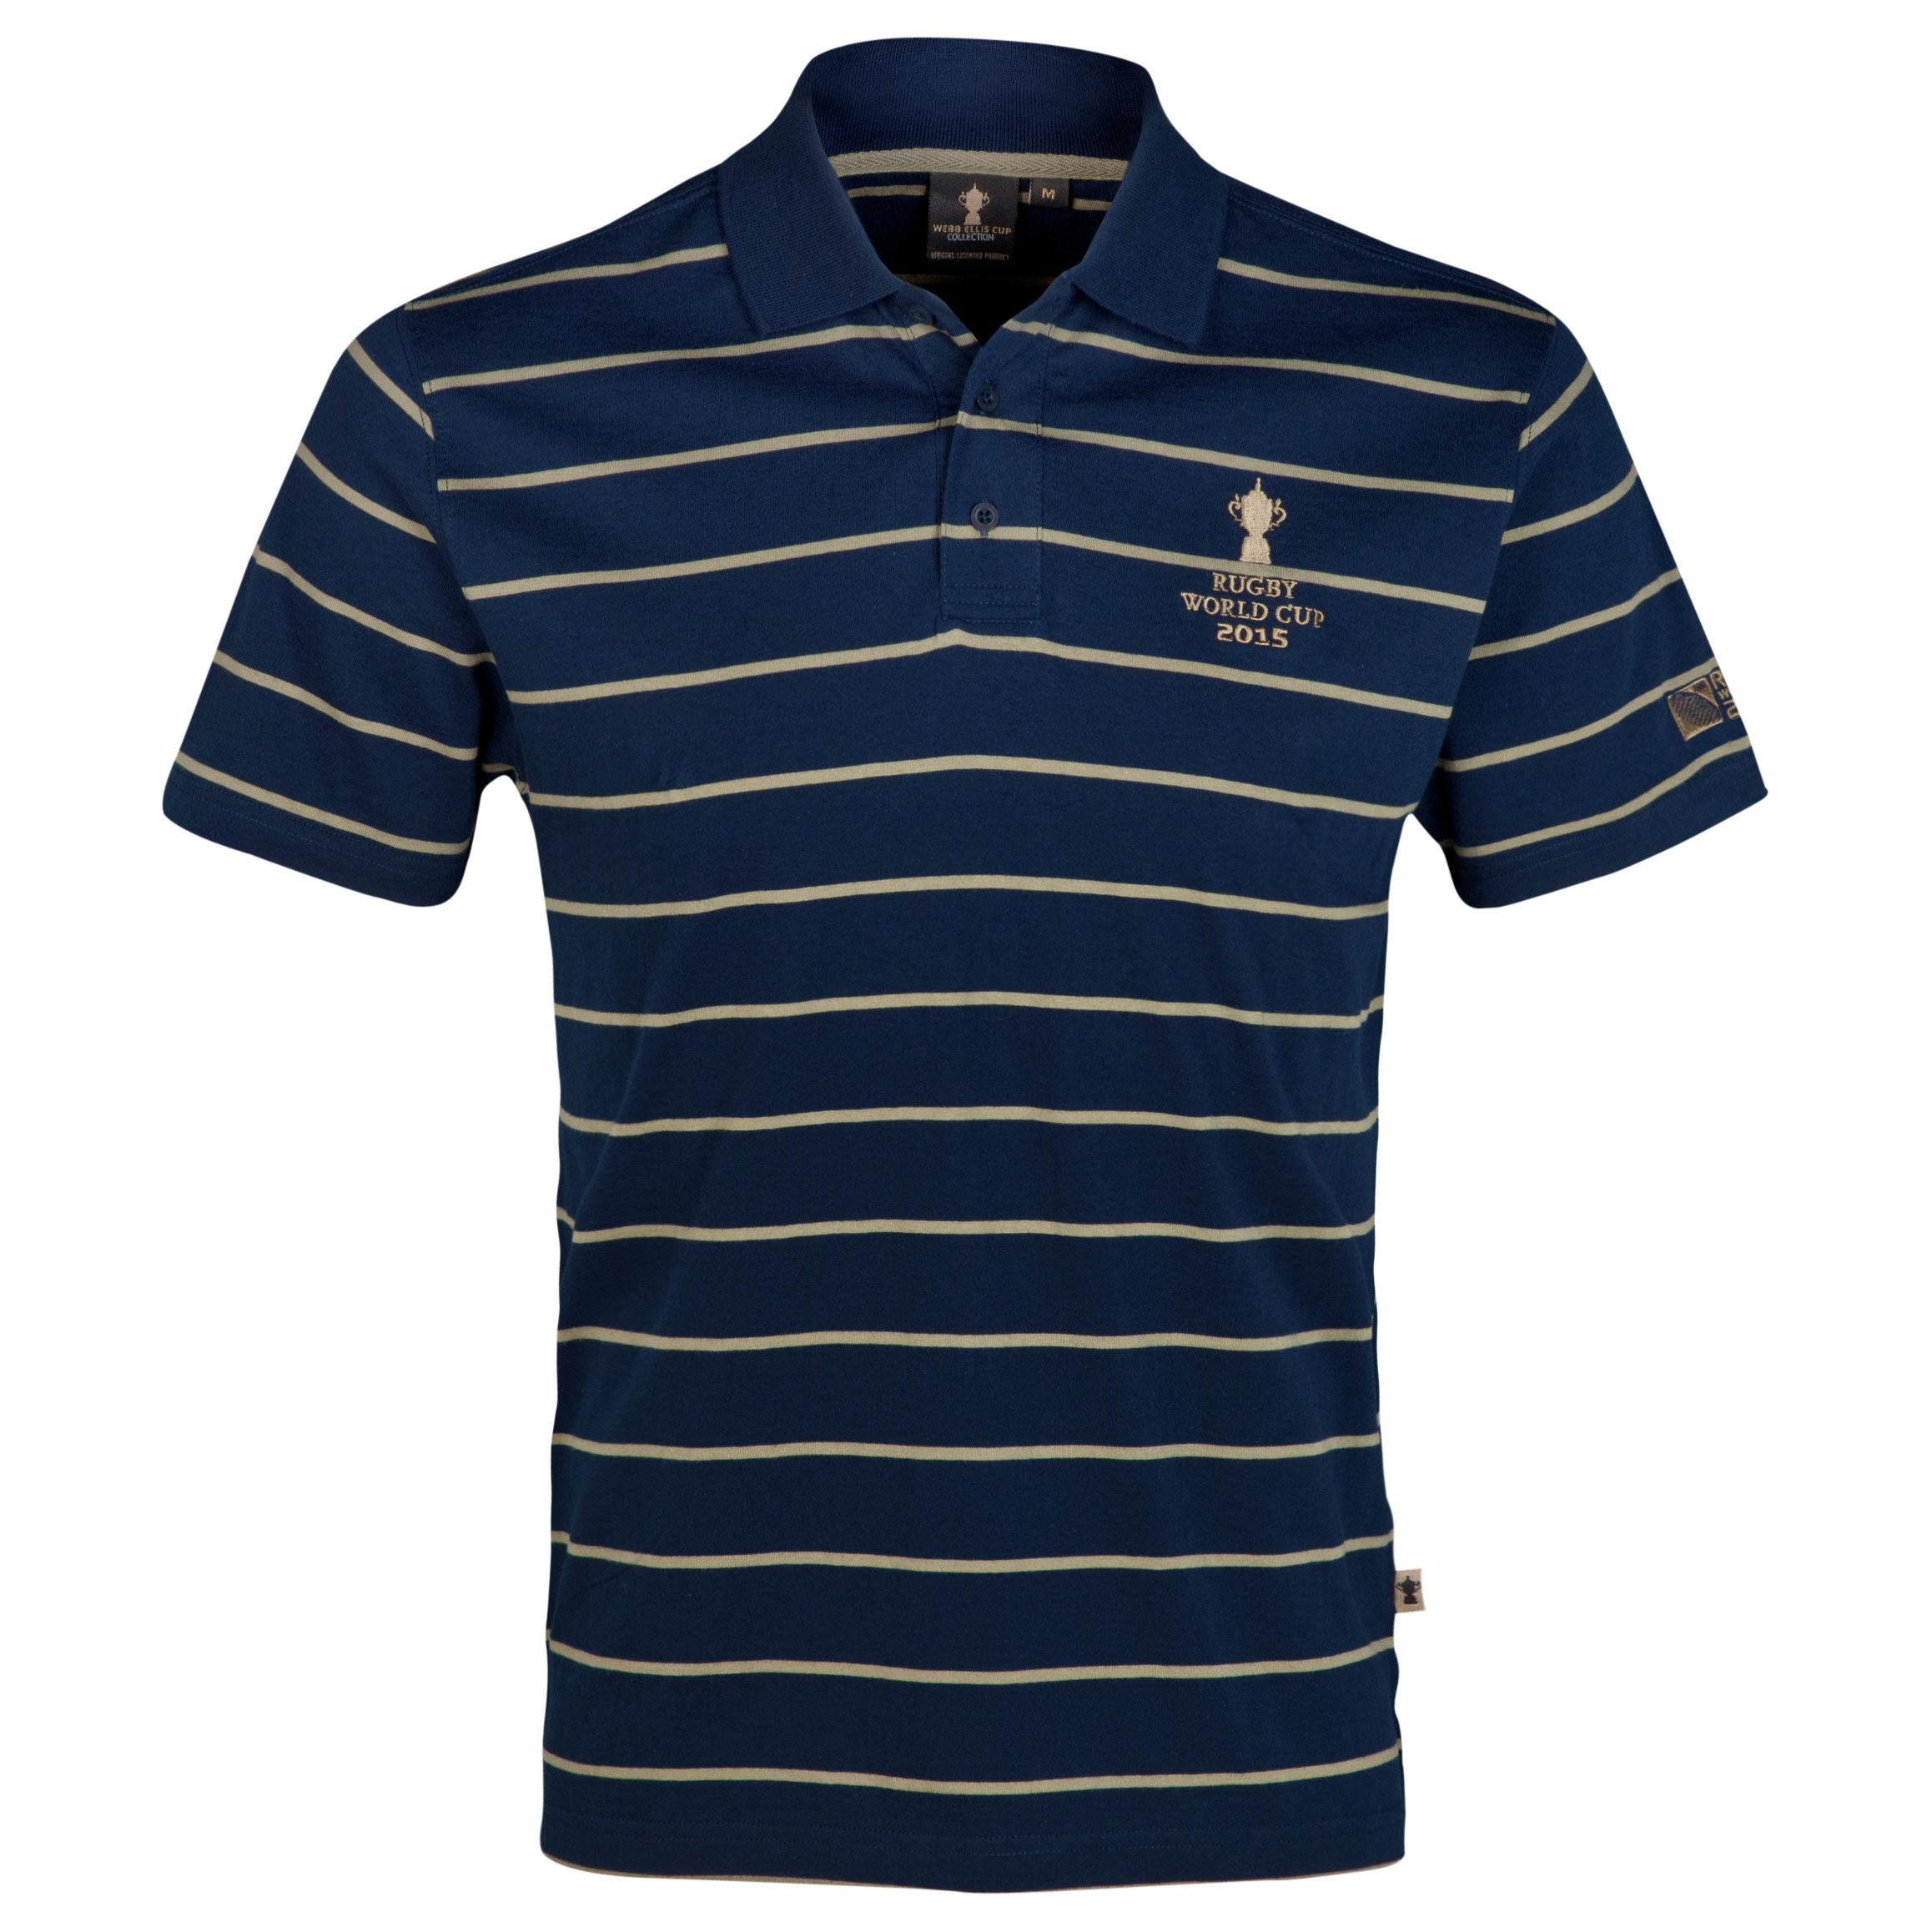 Canterbury Rugby World Cup Webb Ellis Cup Polo Navy